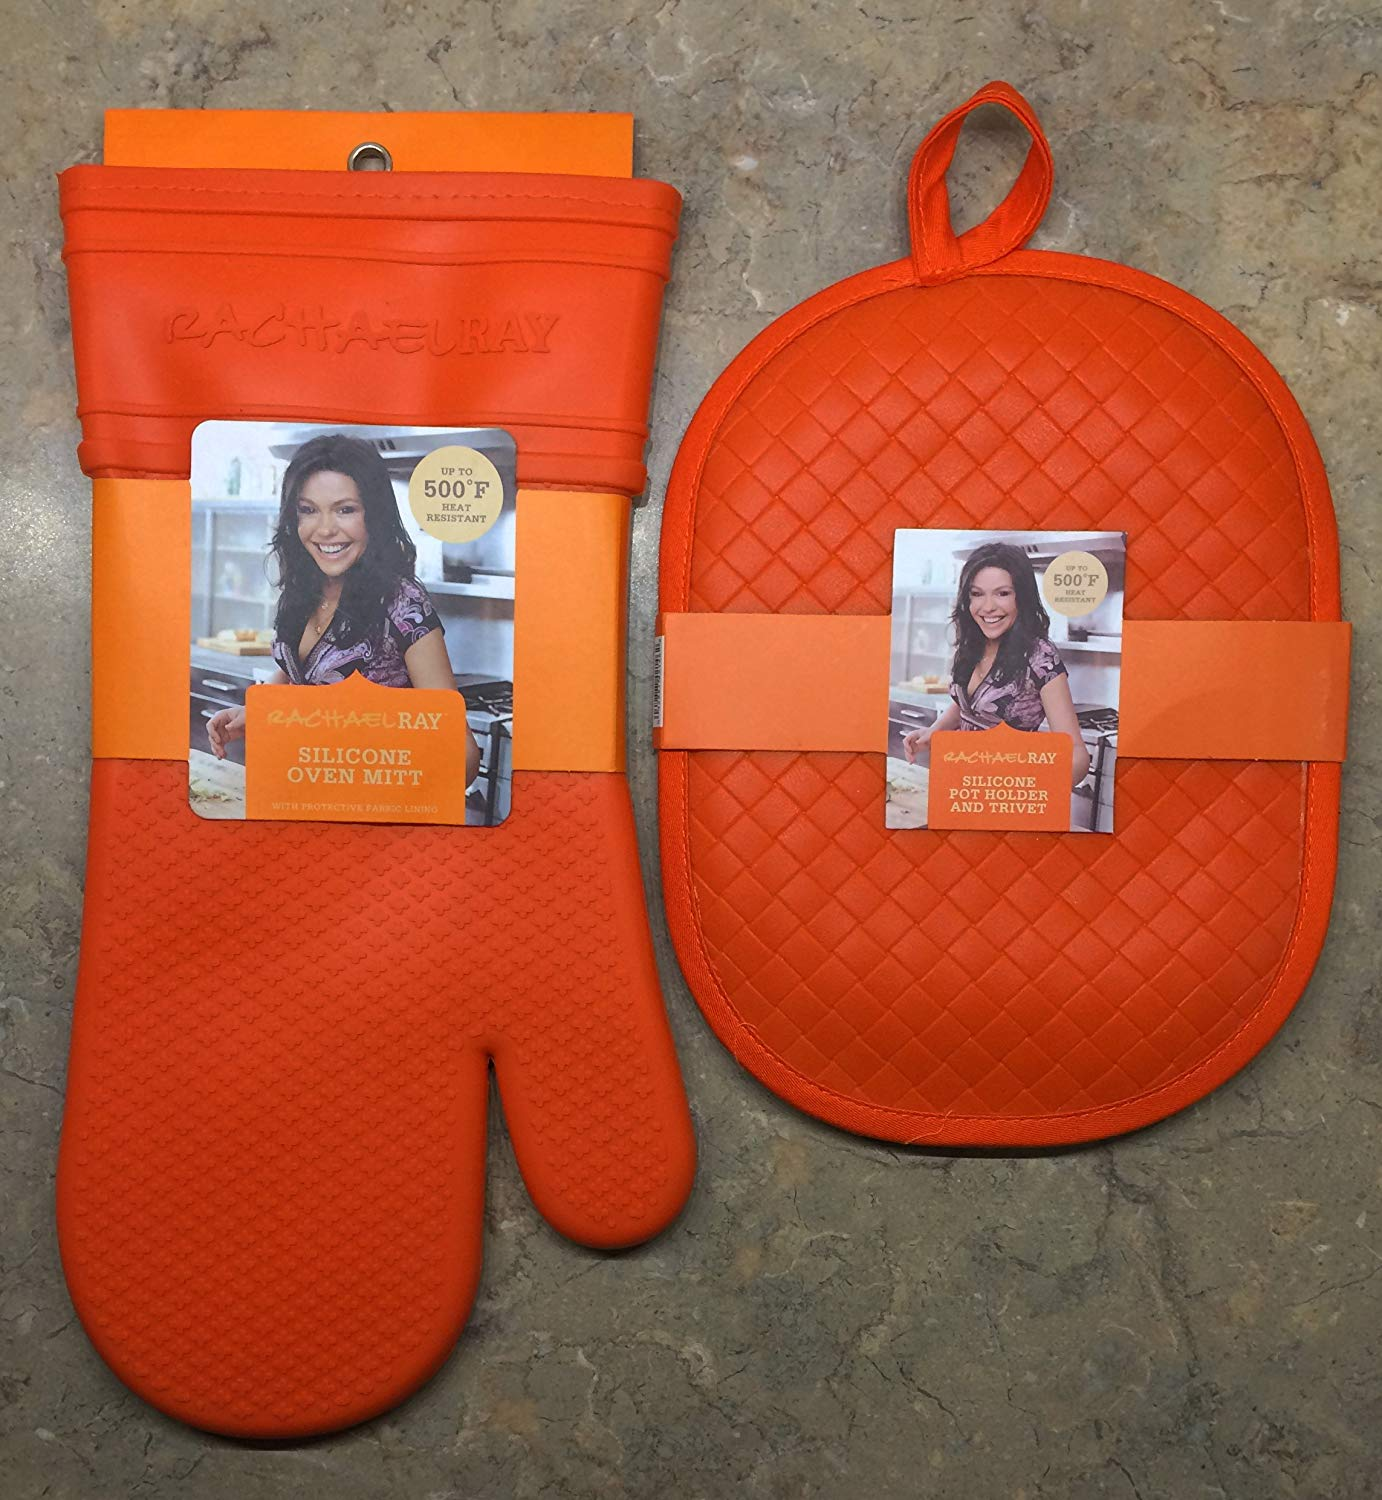 Rachael Ray Kitchen Essentials Set | Silicone Pot Holder And Trivet + Silicone Oven Mitt With Protective Fabric Lining | Up To 500 Degrees F Heat Resistant | Non Slip Grip (Orange)